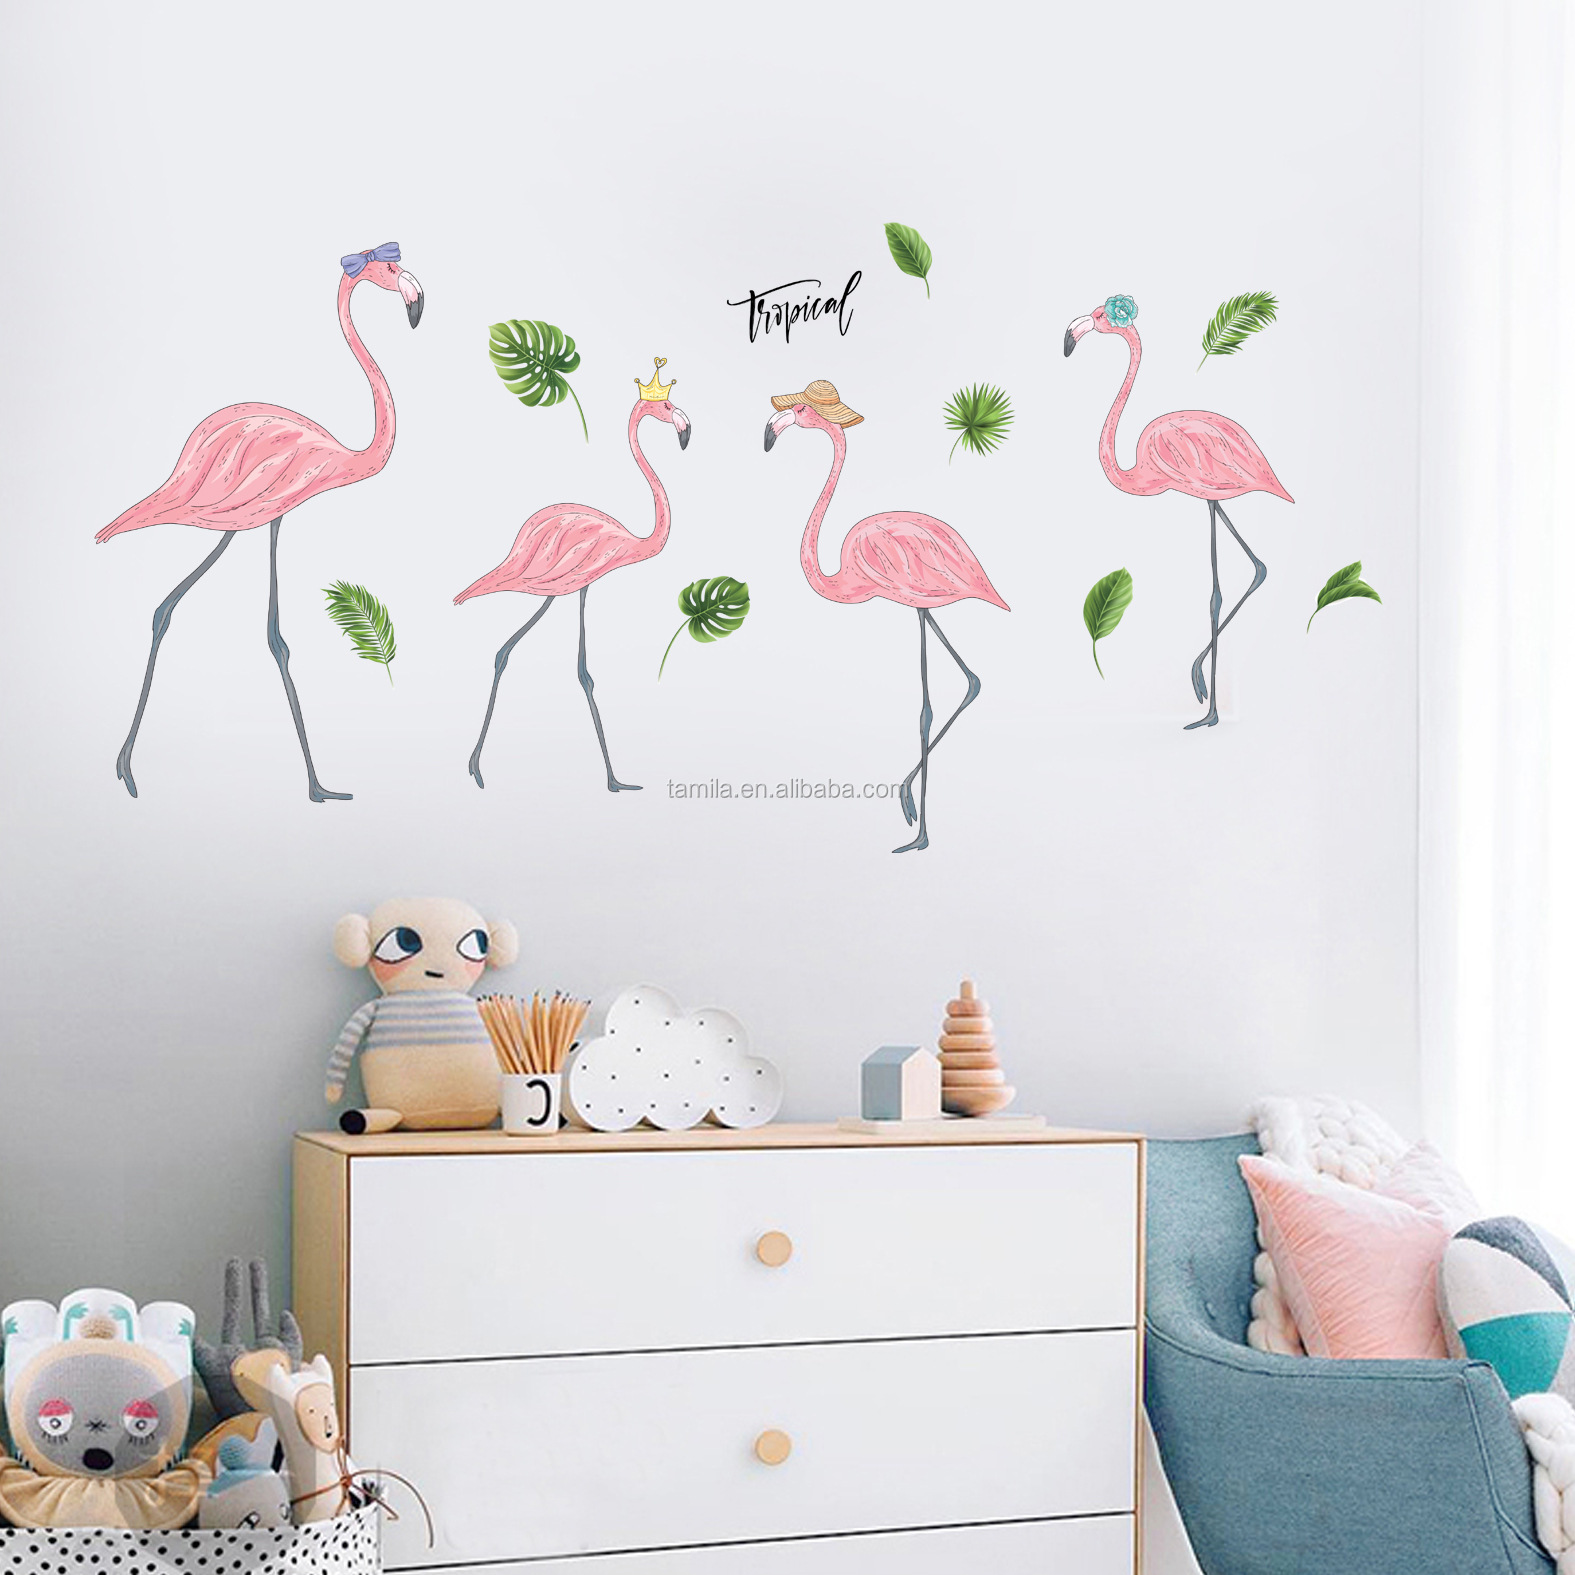 flamingo Wall Stickers Art DIY Home Children's room Decor Removable Wedding Decoration Wall Decals